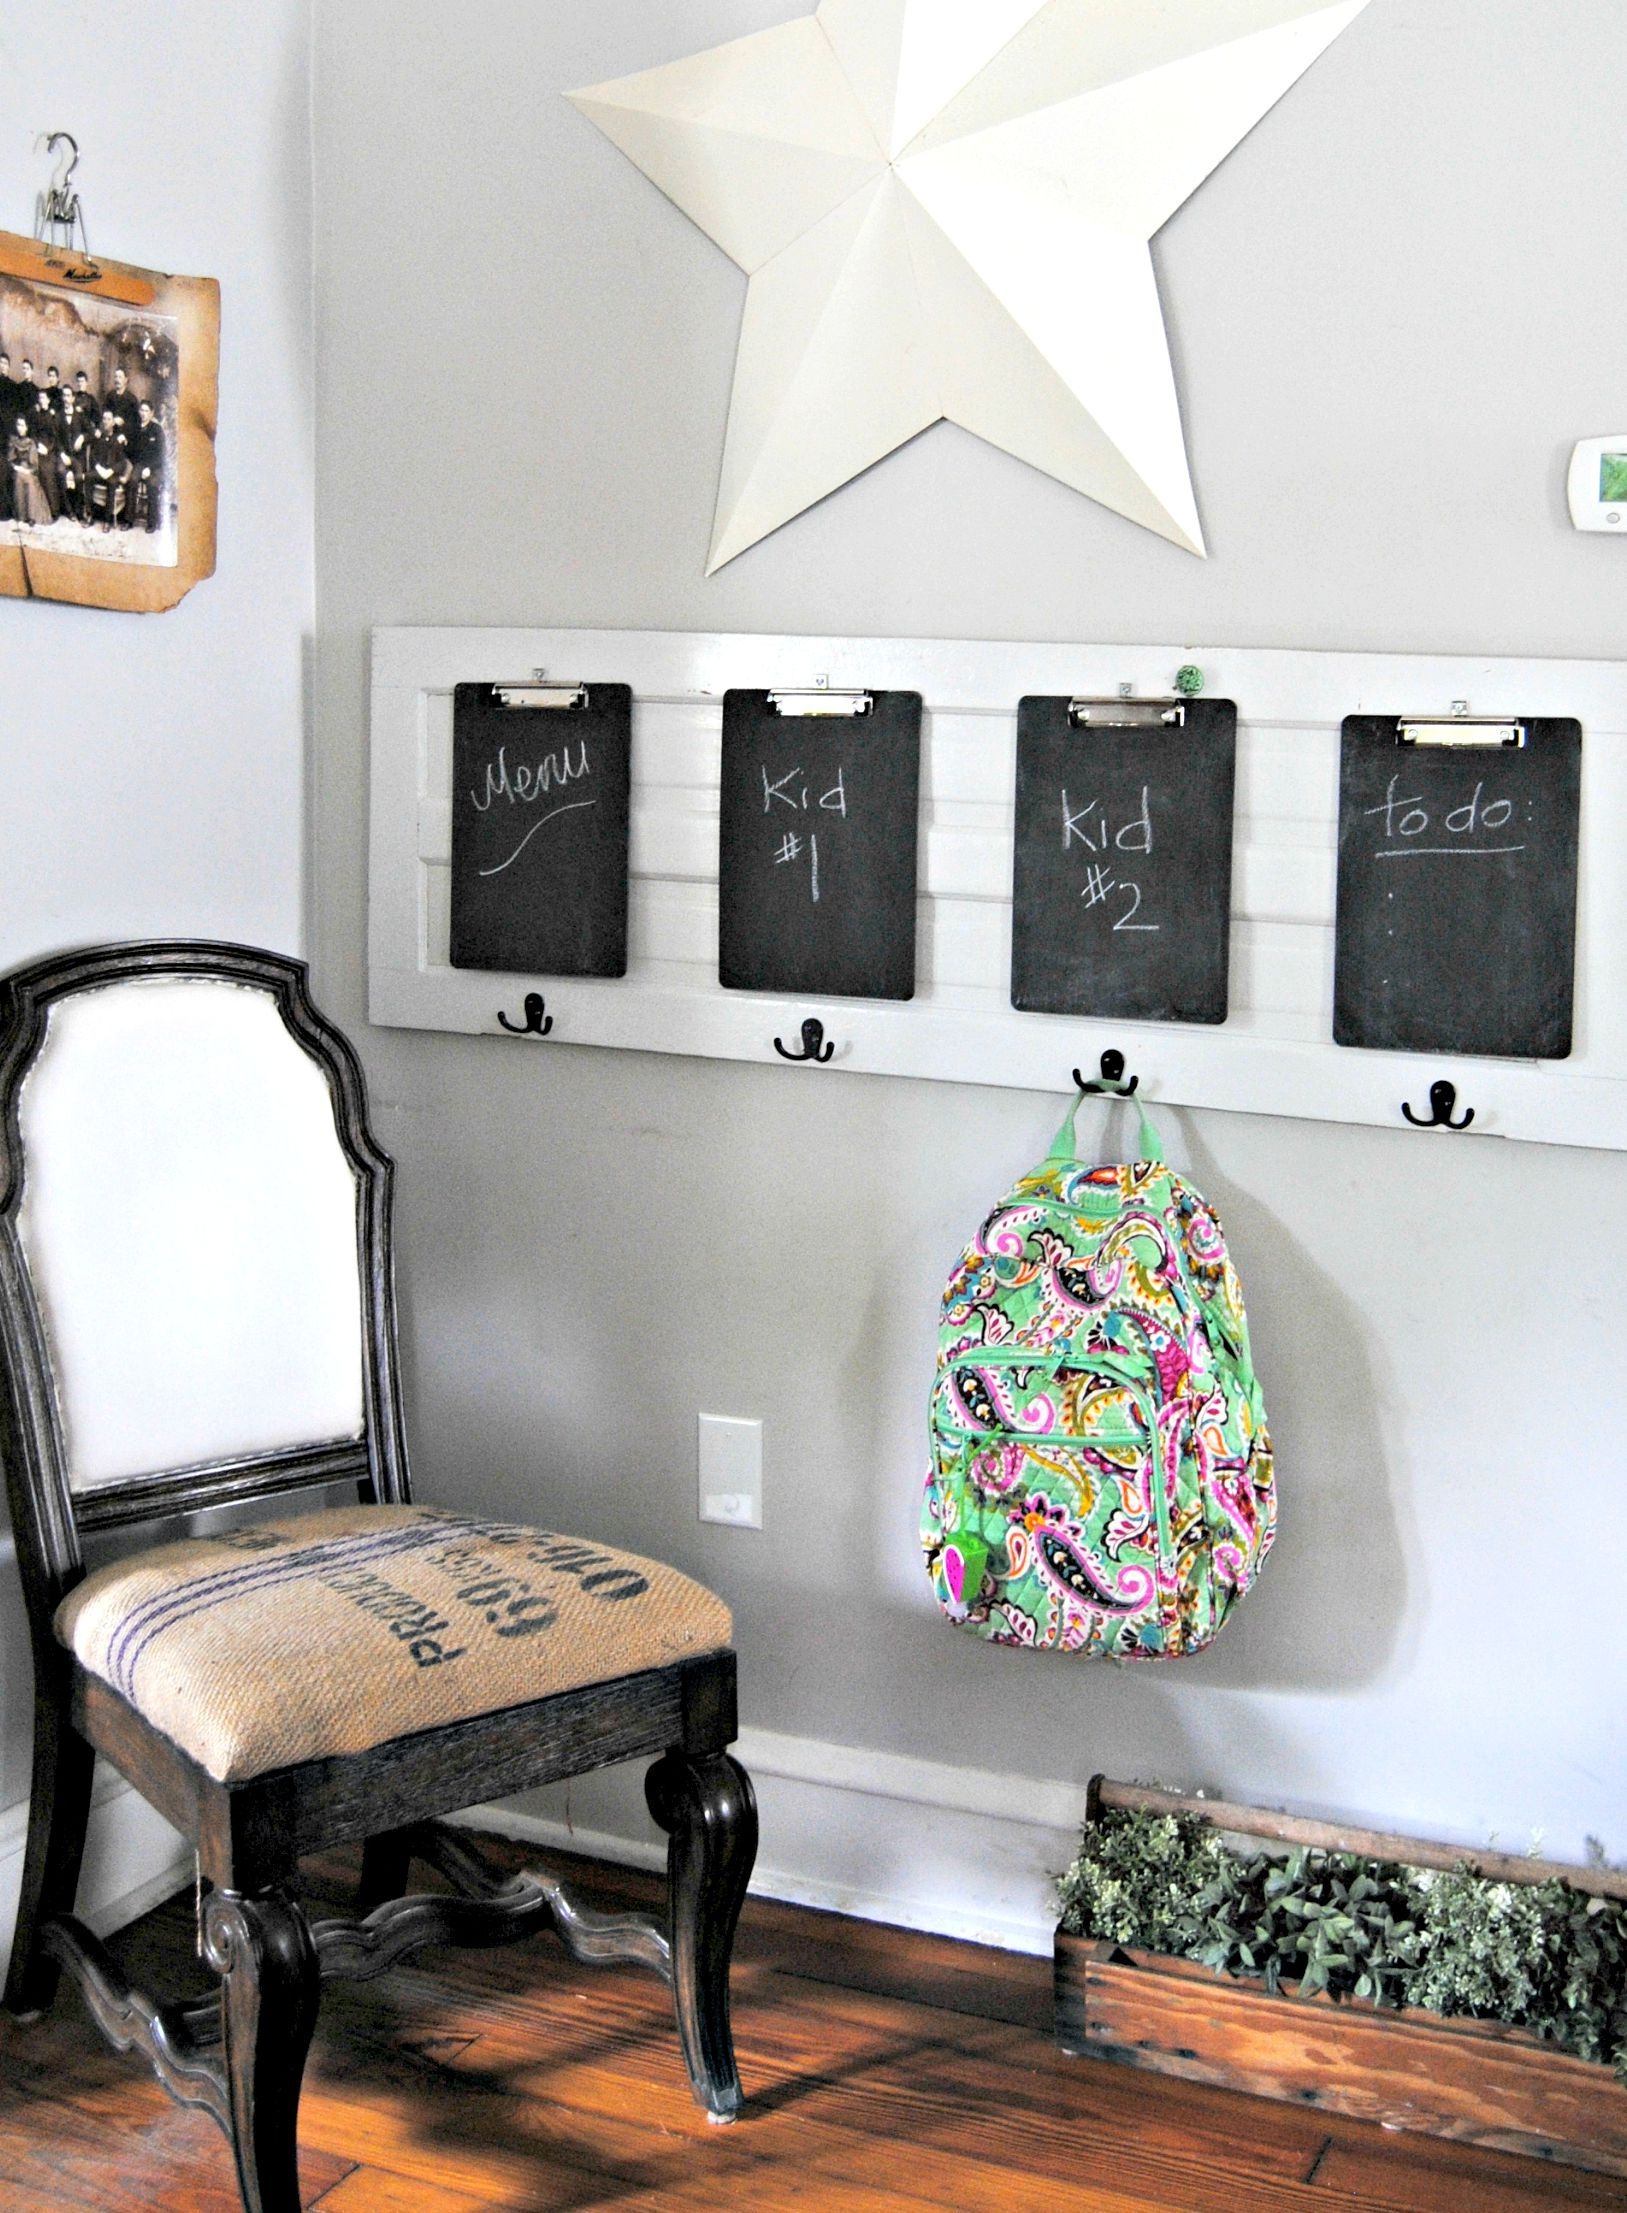 15 Clever Ideas for DIY Hooks - DIY Coat Racks